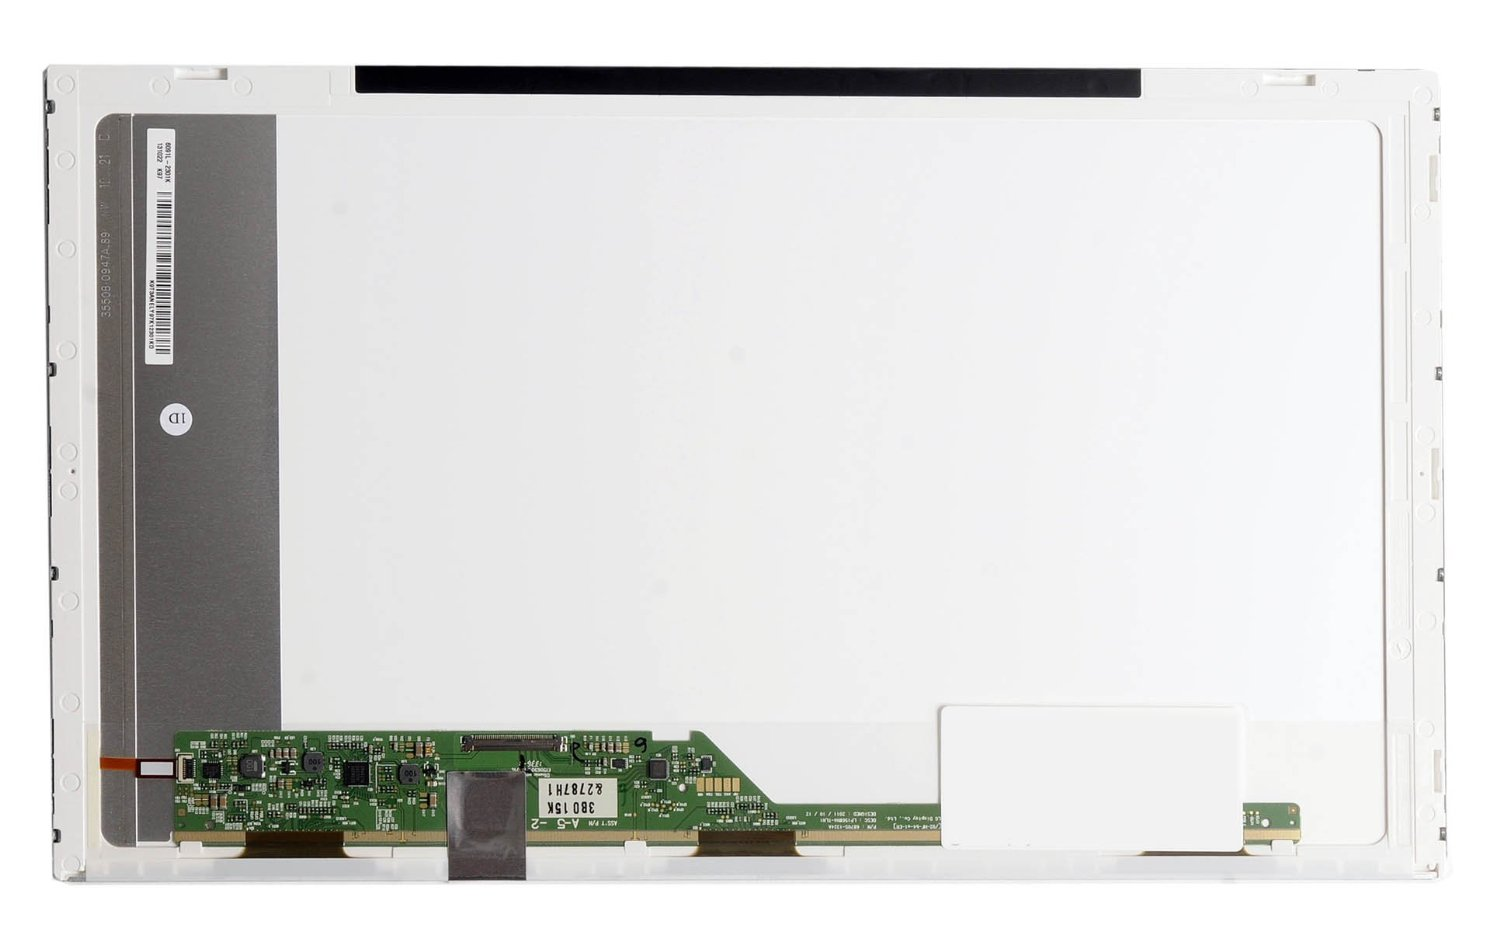 For HP 620, G56-100, G56-125NR, G56-127NR, G56-128CA LAPTOP LCD REPLACEMENT SCREEN 15.6 WXGA HD LED original a1706 a1708 lcd back cover for macbook pro13 2016 a1706 a1708 laptop replacement